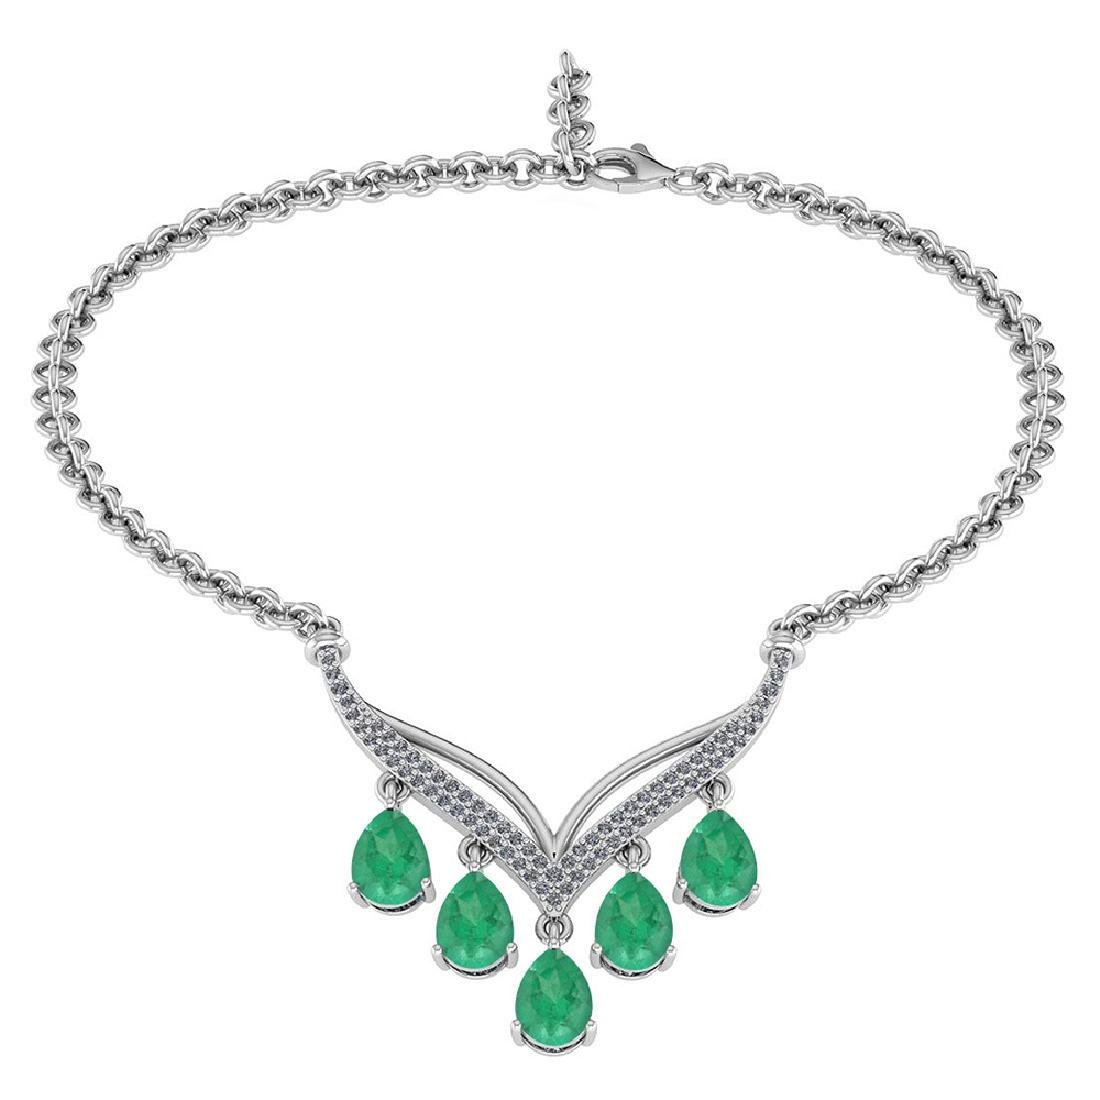 Certified 4.19 CTW Genuine Emerald And Diamond 14k Whit